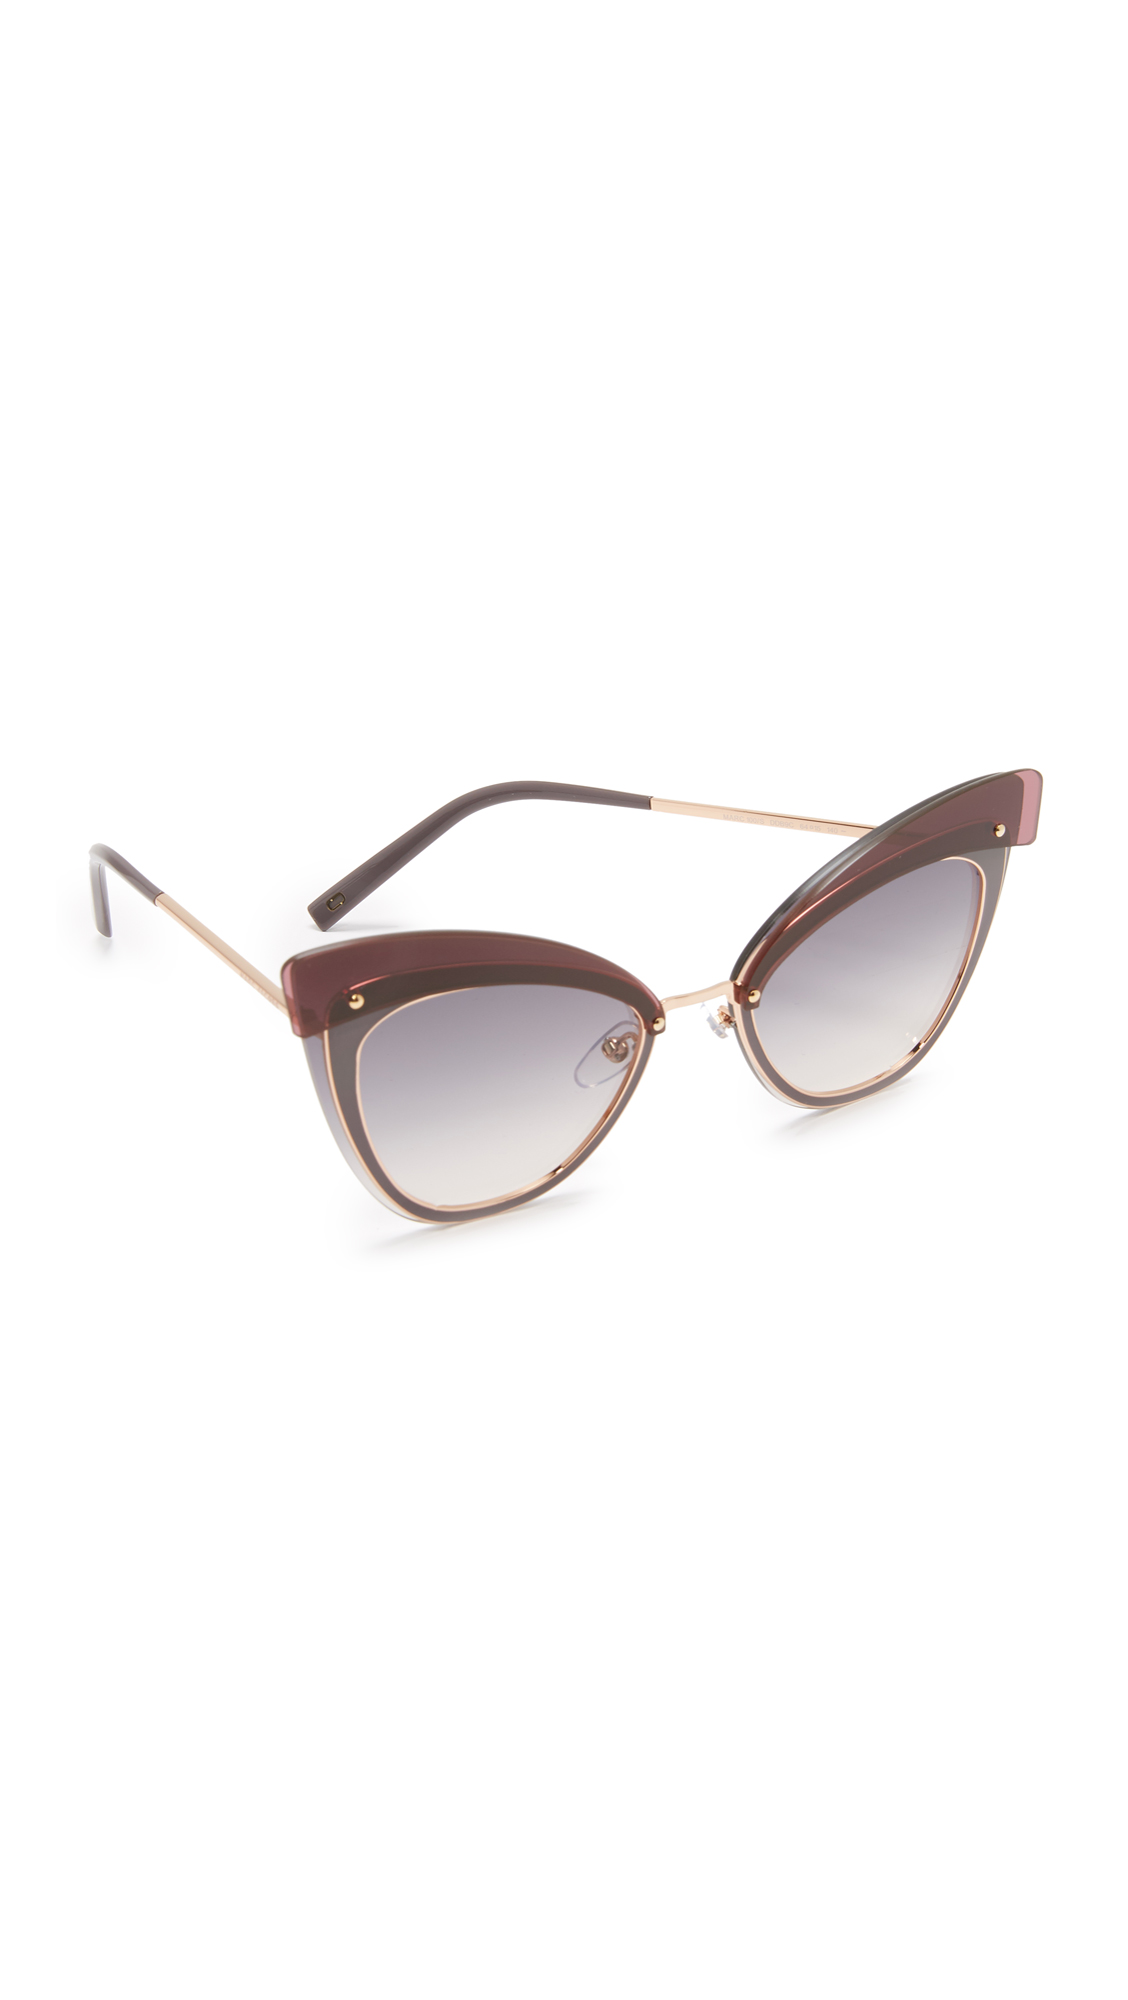 marc jacobs female marc jacobs layers cat eye sunglasses gold copper violetdark grey